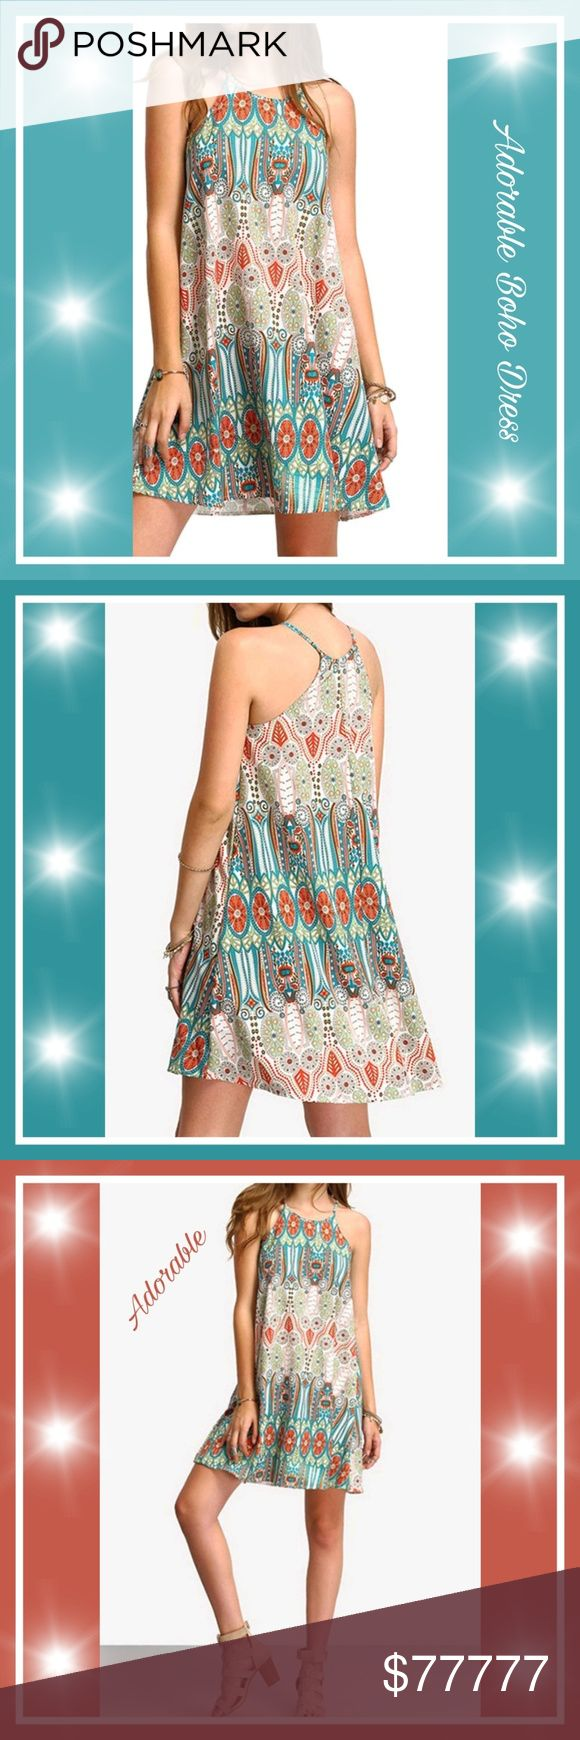 Just arrived 🌴adorable Bohemia Sleeveless  Dress Brand new , beautiful Bohemia Sleeveless Dress Floral Print Spaghetti Strap Mini Beach Dress Boho Hippie  Sundress  Great for beach & lounging around the cruise ship,  or just a day / night out , dress it up with your favorite accessories or wear casual,  cool & very comfy Wear all year around for cooler day a jean jacket or any jacket will look great ,if you check size chart & see you need a certain size just comment size below so I can make…